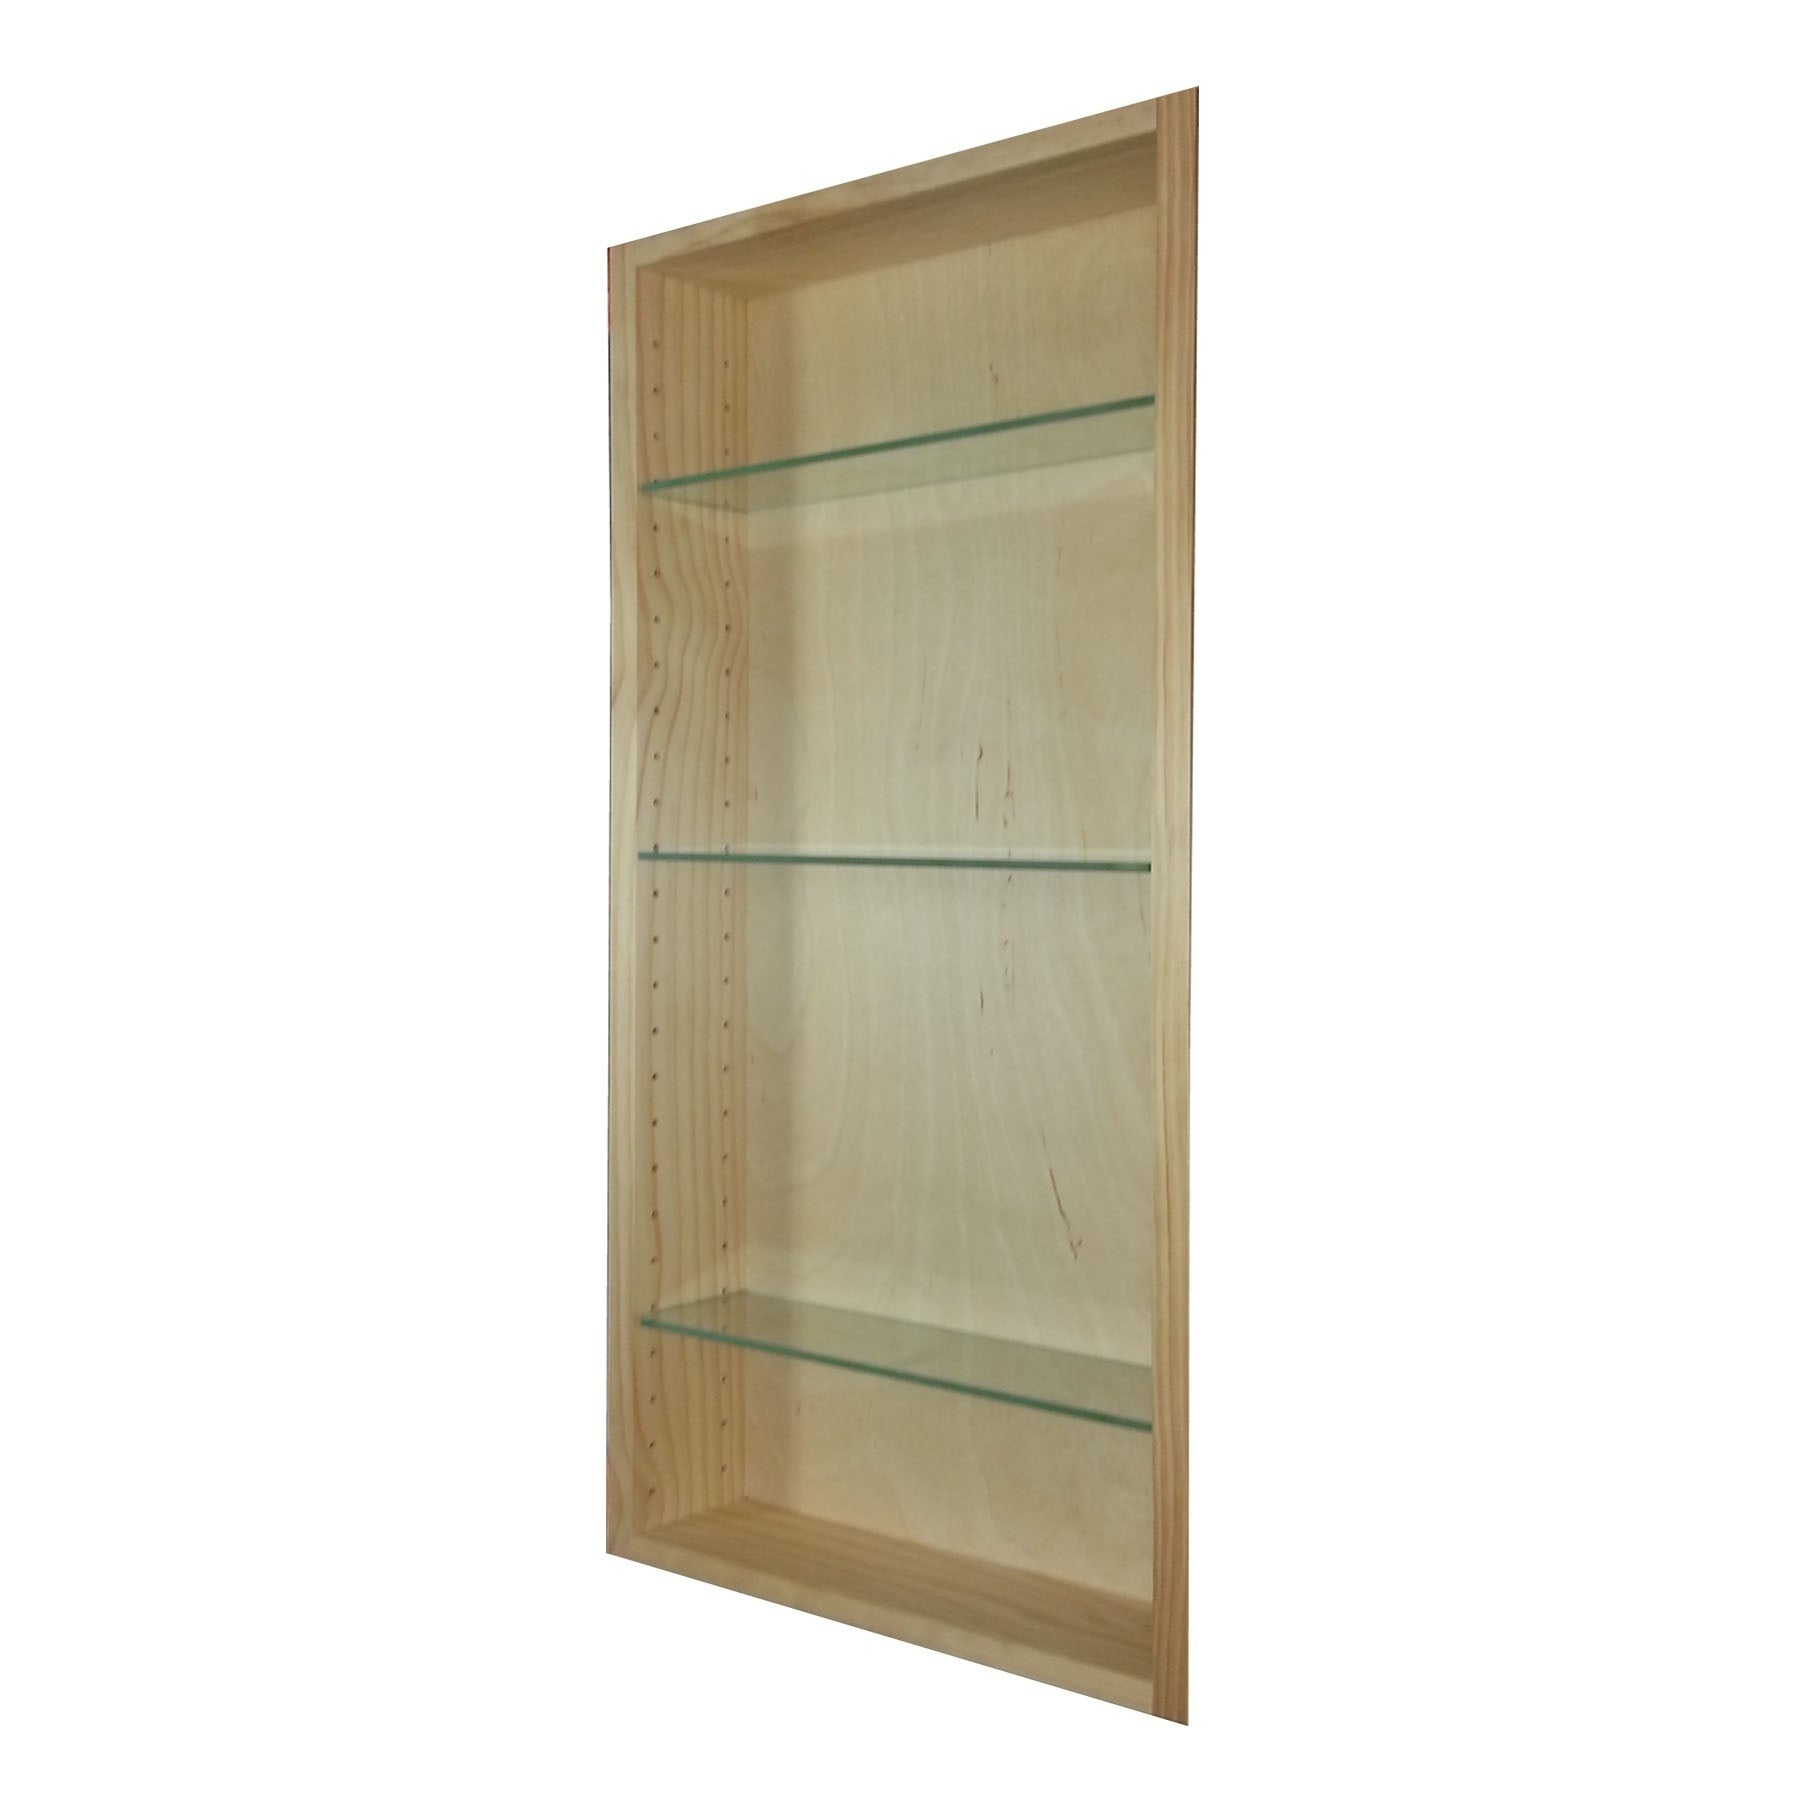 Wg Wood Products Electra Recessed Solid Medicine Cabinet Free Shipping Today 17524338